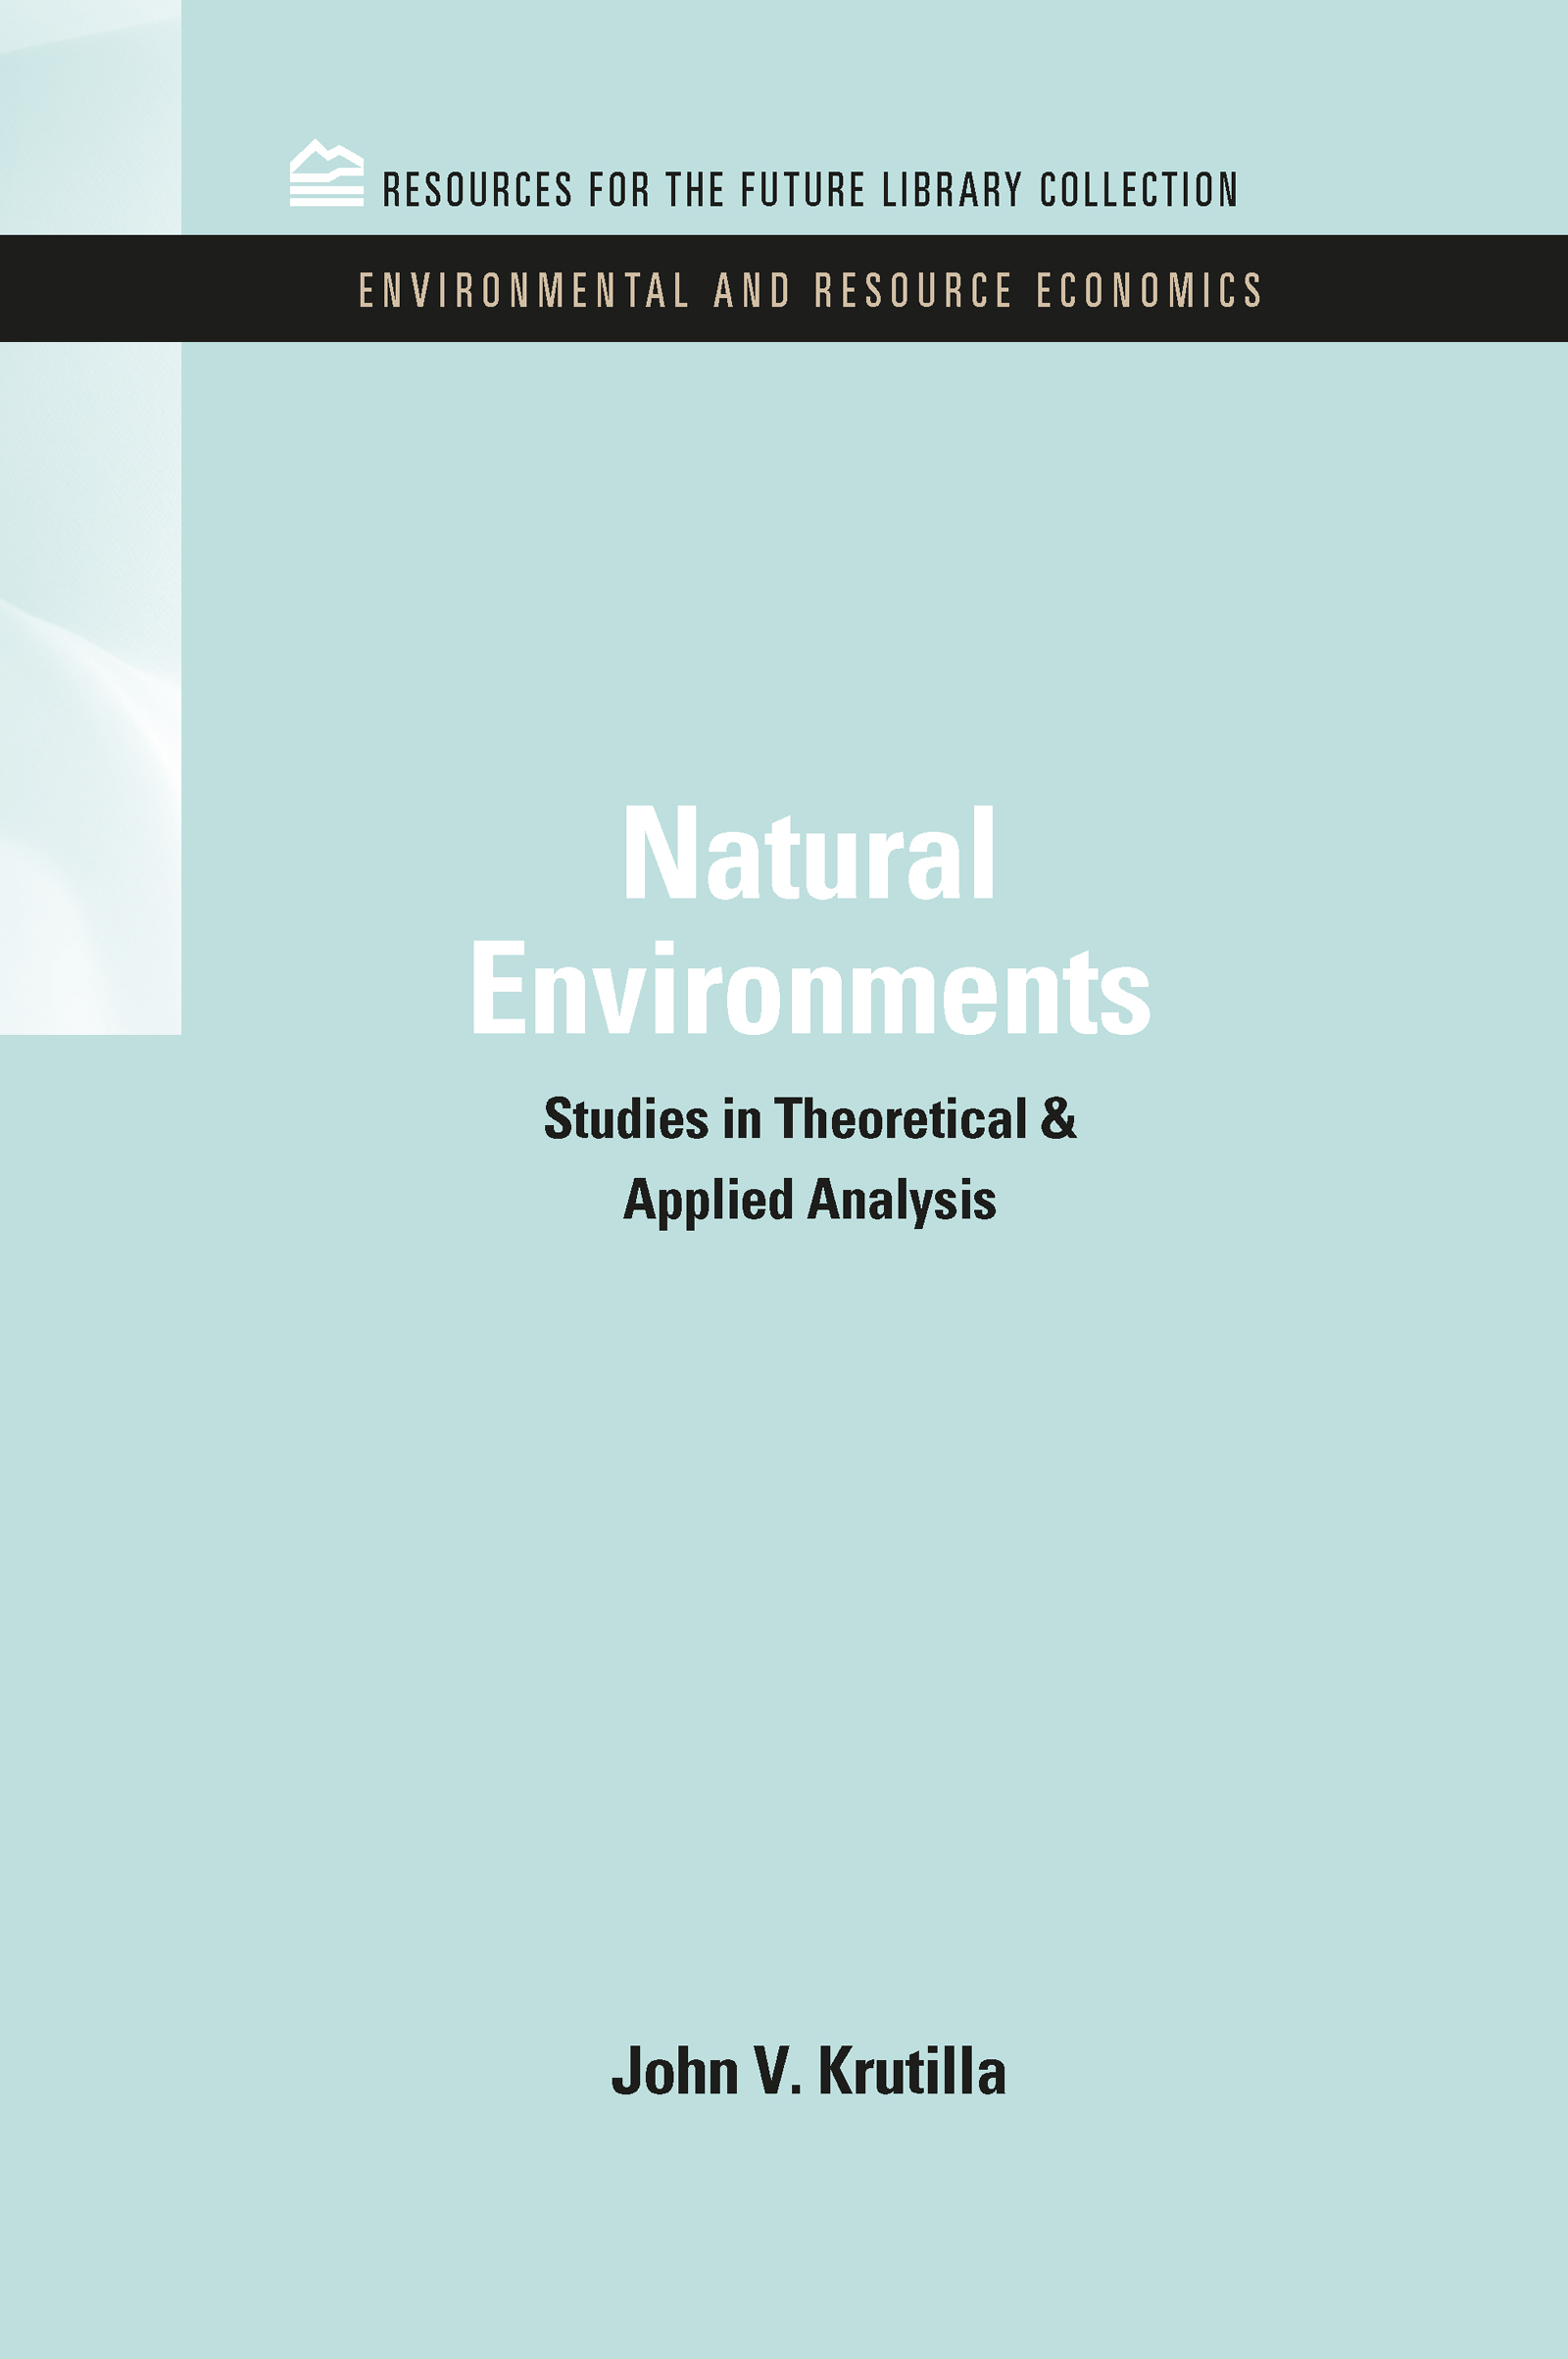 Natural Environments: Studies in Theoretical & Applied Analysis book cover